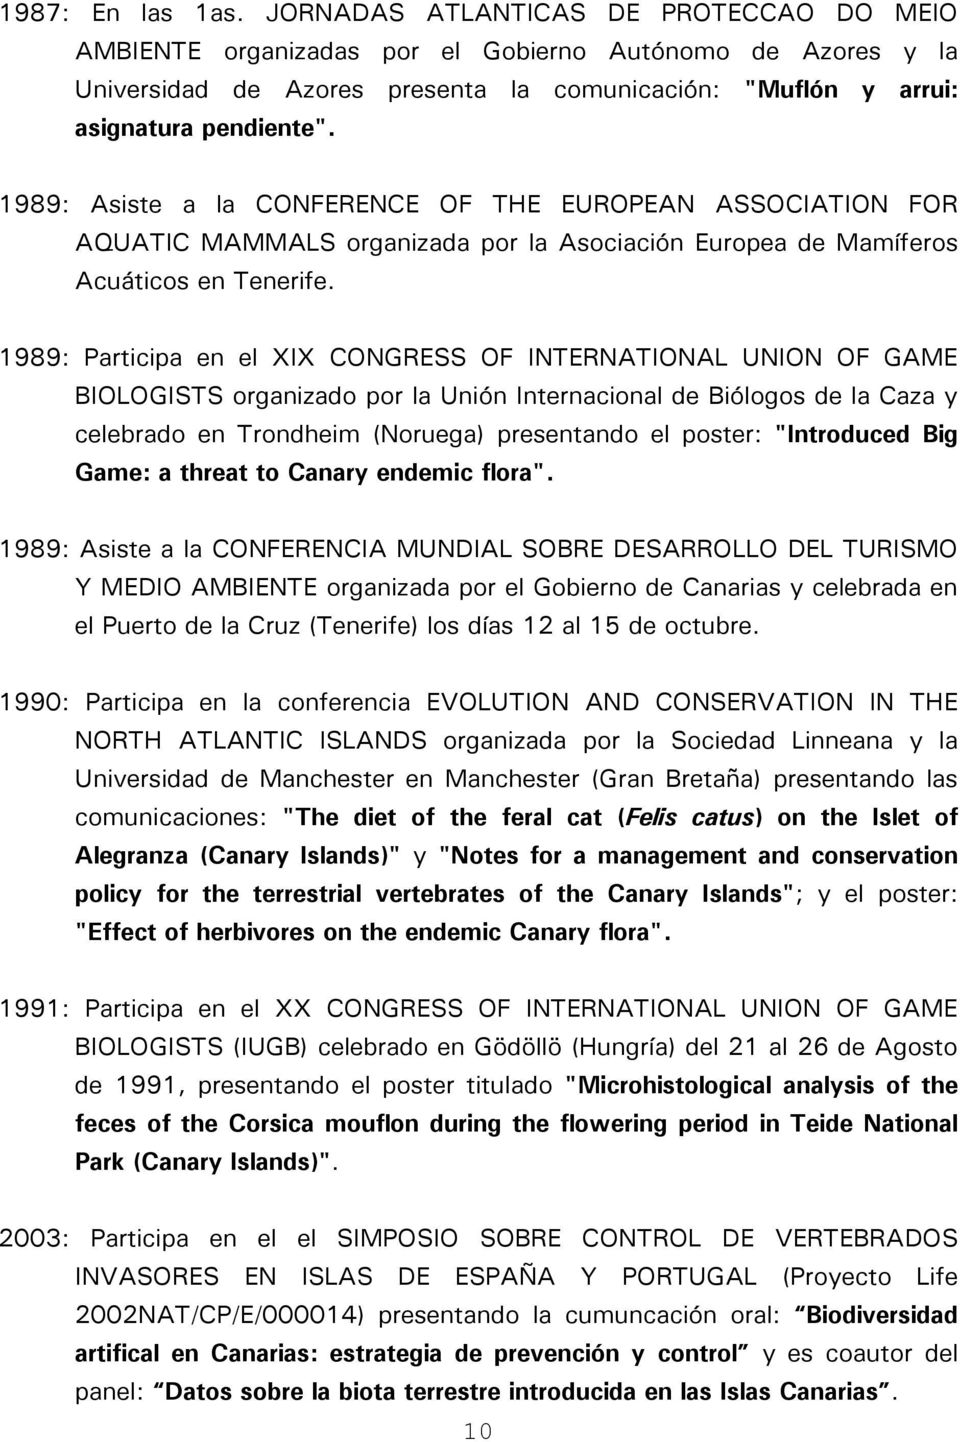 1989: Asiste a la CONFERENCE OF THE EUROPEAN ASSOCIATION FOR AQUATIC MAMMALS organizada por la Asociación Europea de Mamíferos Acuáticos en Tenerife.